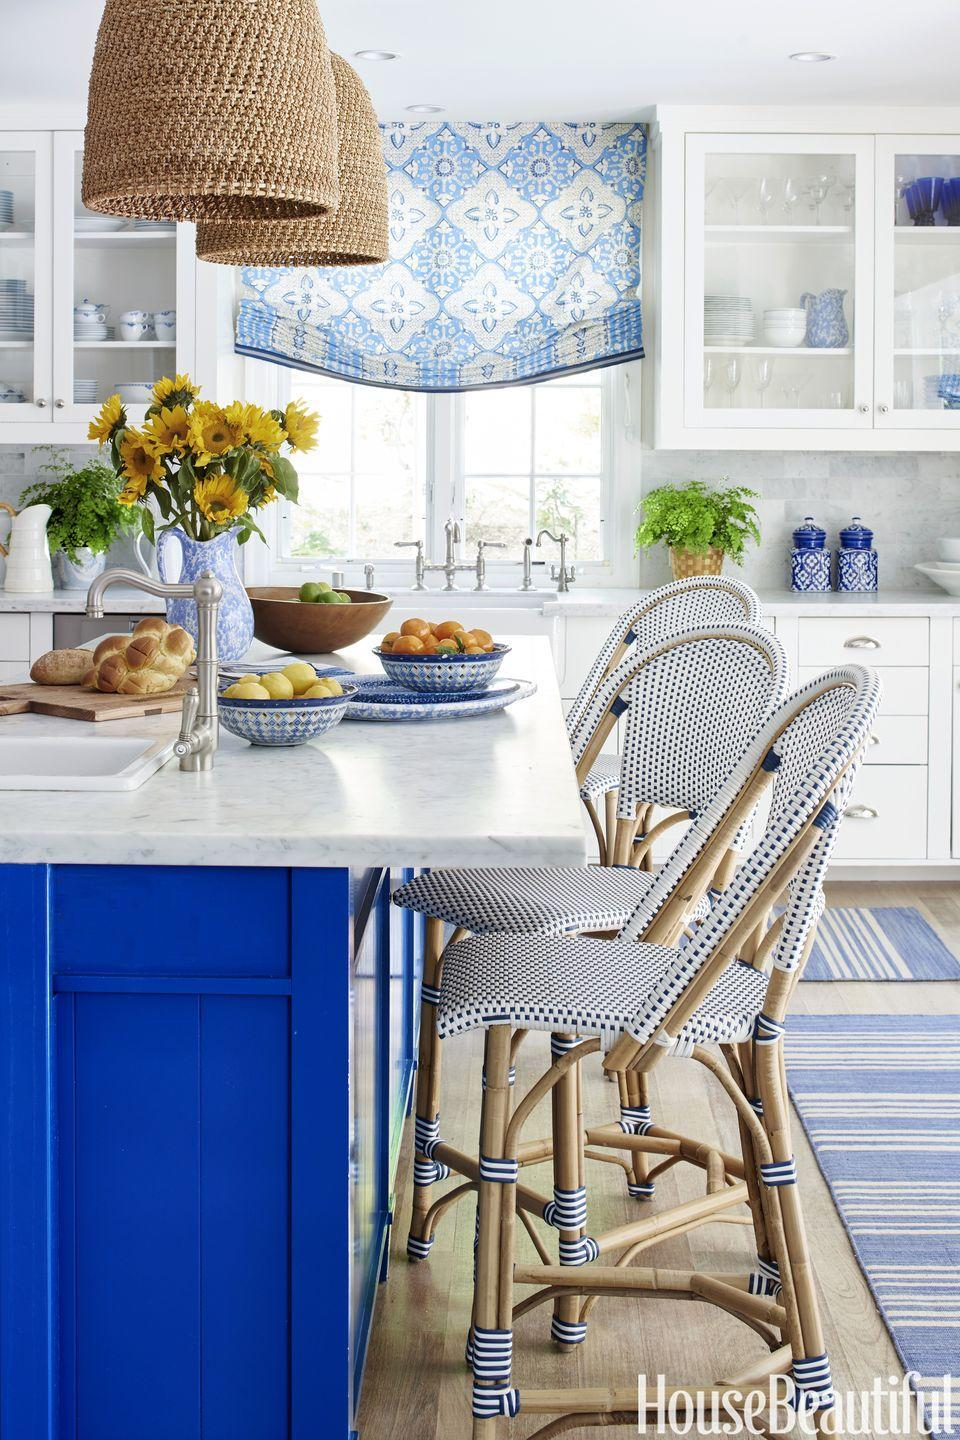 "<p>Take <a href=""https://www.housebeautiful.com/design-inspiration/house-tours/g3878/mark-d-sikes-blue-white-house/"" rel=""nofollow noopener"" target=""_blank"" data-ylk=""slk:blue and white"" class=""link rapid-noclick-resp"">blue and white</a> to the next level with a vibrant burst of cobalt, like in this dreamy kitchen by Mark D. Sikes. It makes a statement but still feels classic and is simply perfect for a coastal beach house (or just someone who wishes they lived a little closer to the ocean). </p>"